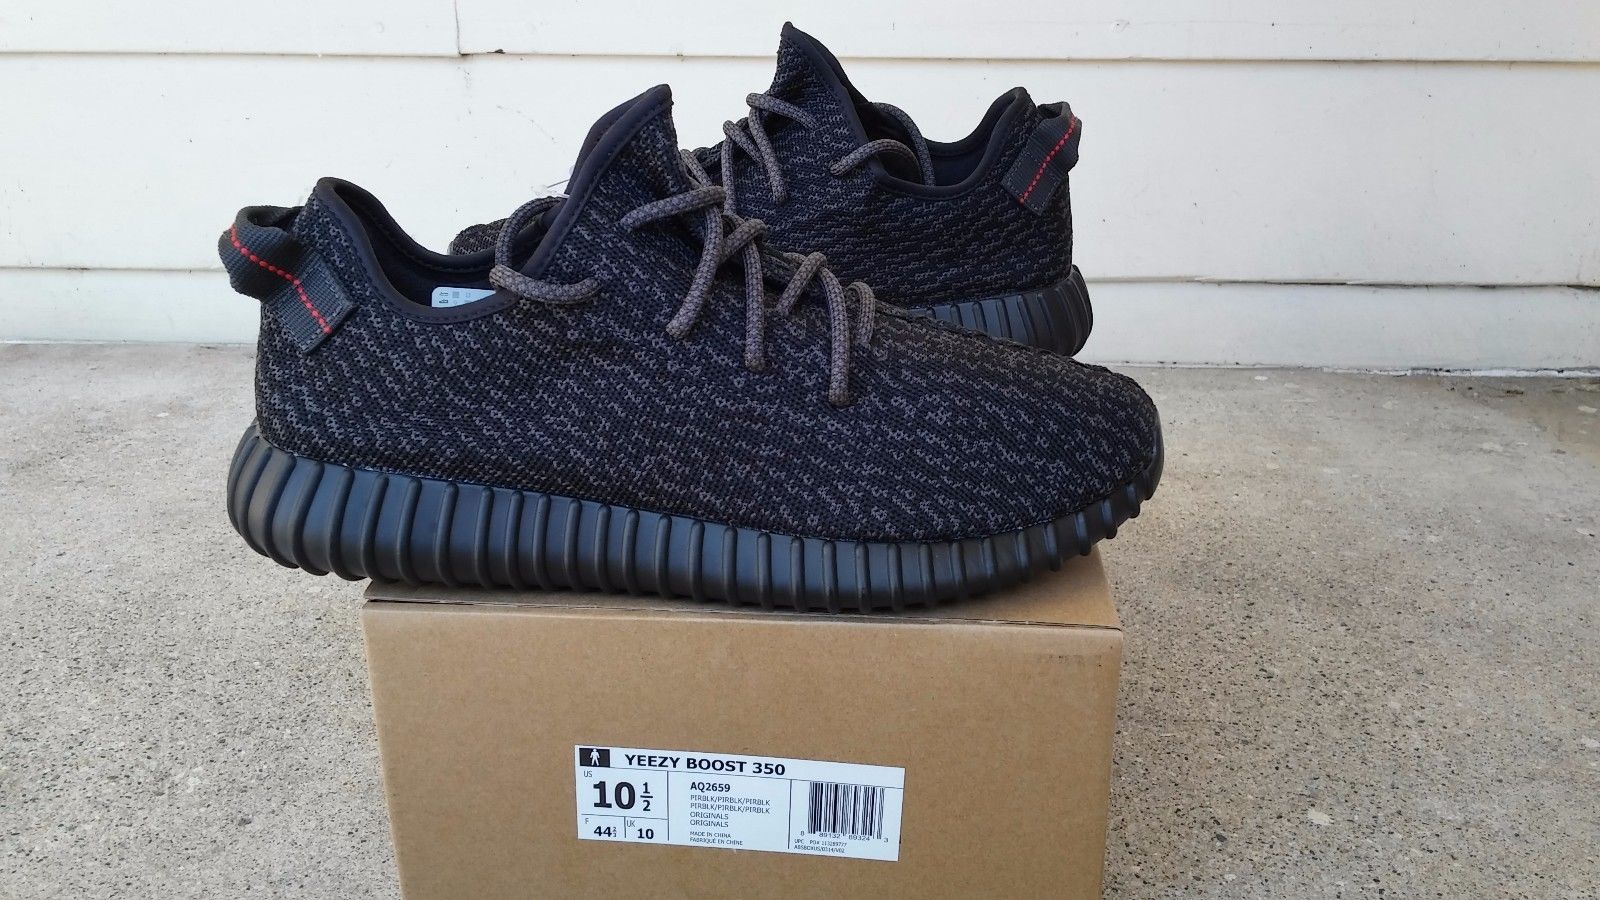 6283a28a233 Yeezy Boost Yeezy Pirate Black 350 Size 10.5 - Formal Shoes for Sale -  Grailed